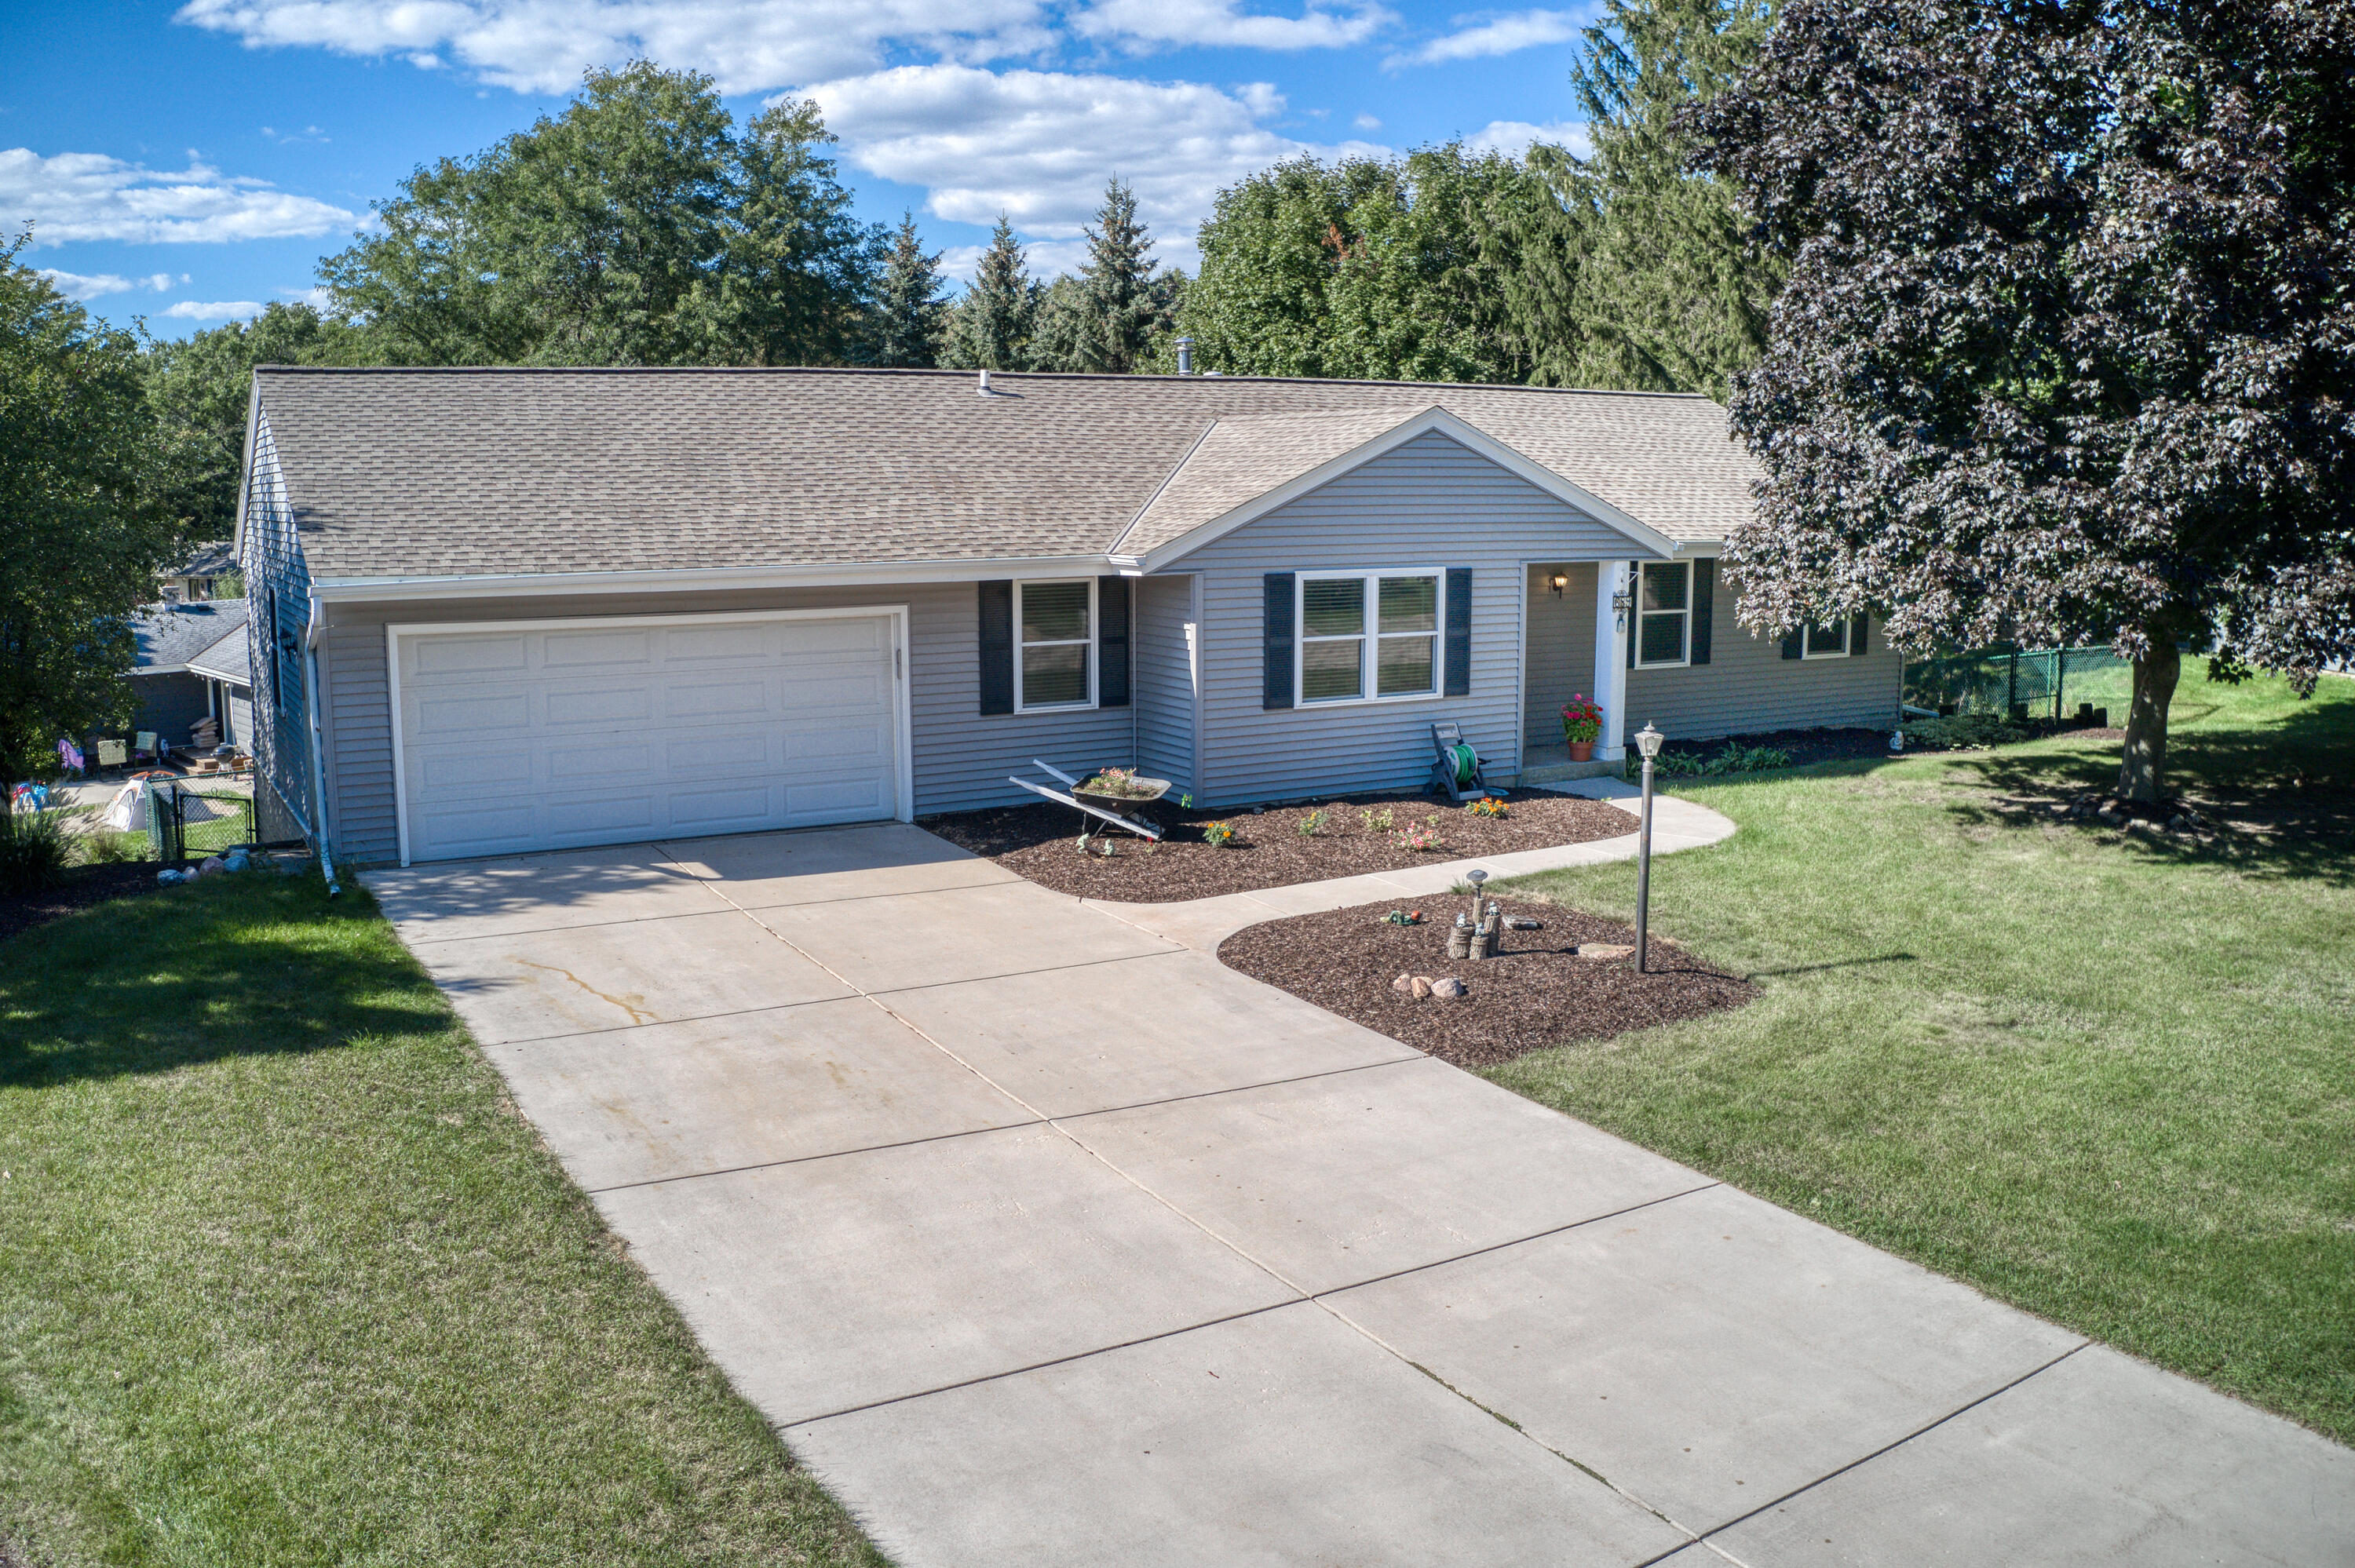 689 Cardiff Dr, Hartland, Wisconsin 53029, 4 Bedrooms Bedrooms, 11 Rooms Rooms,2 BathroomsBathrooms,Single-Family,For Sale,Cardiff Dr,1763762